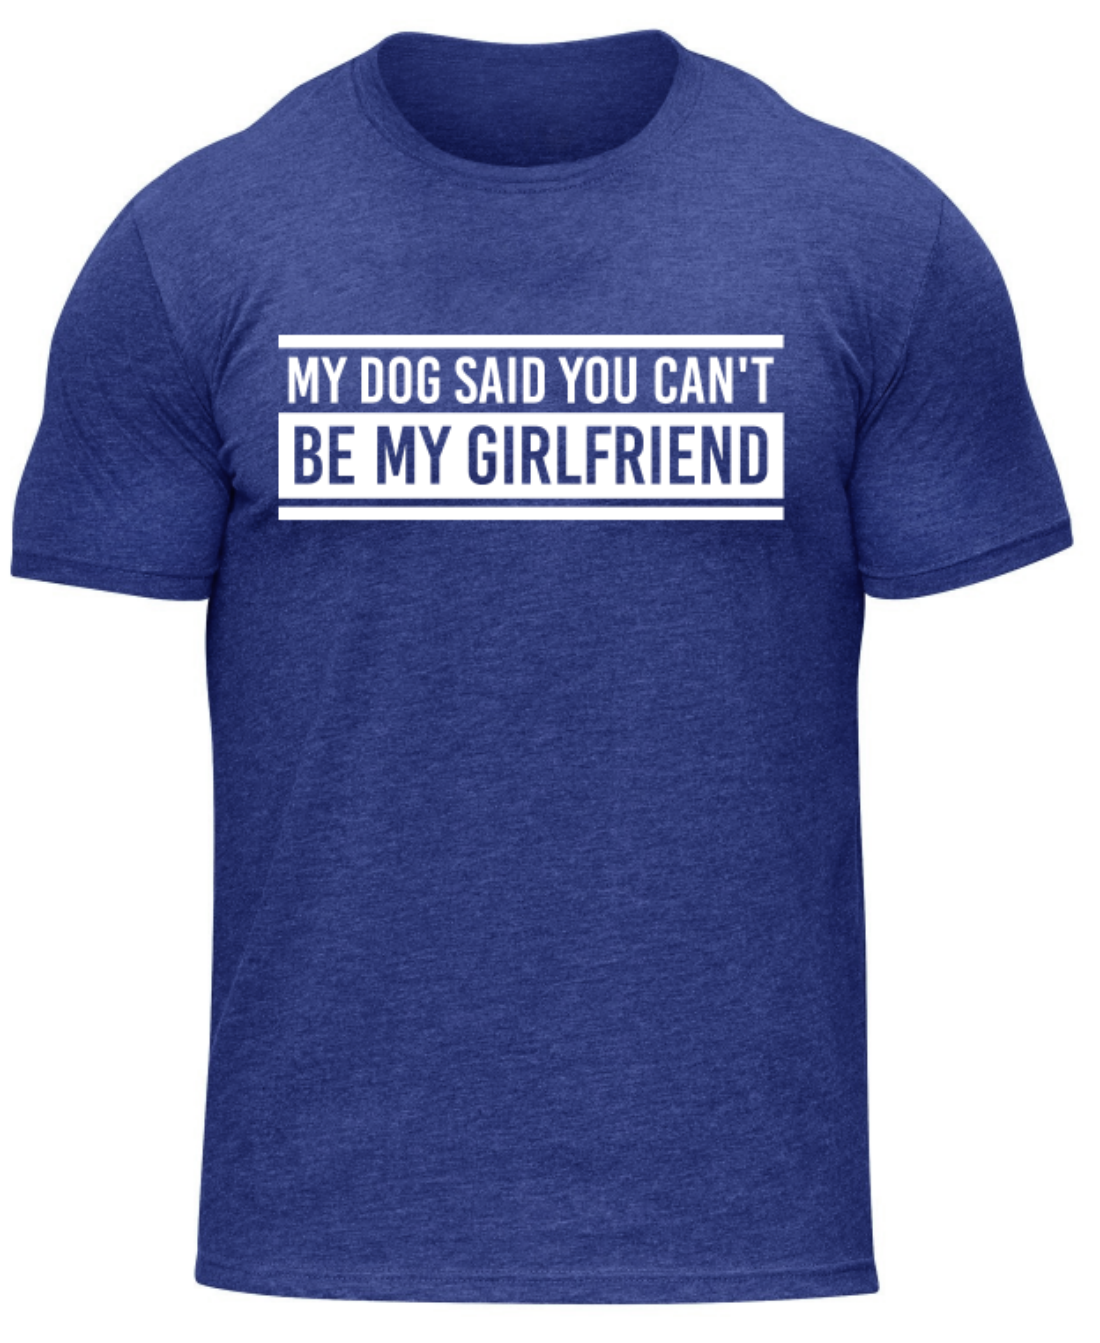 My Dog said You Can't Be My Girlfriend-Tee